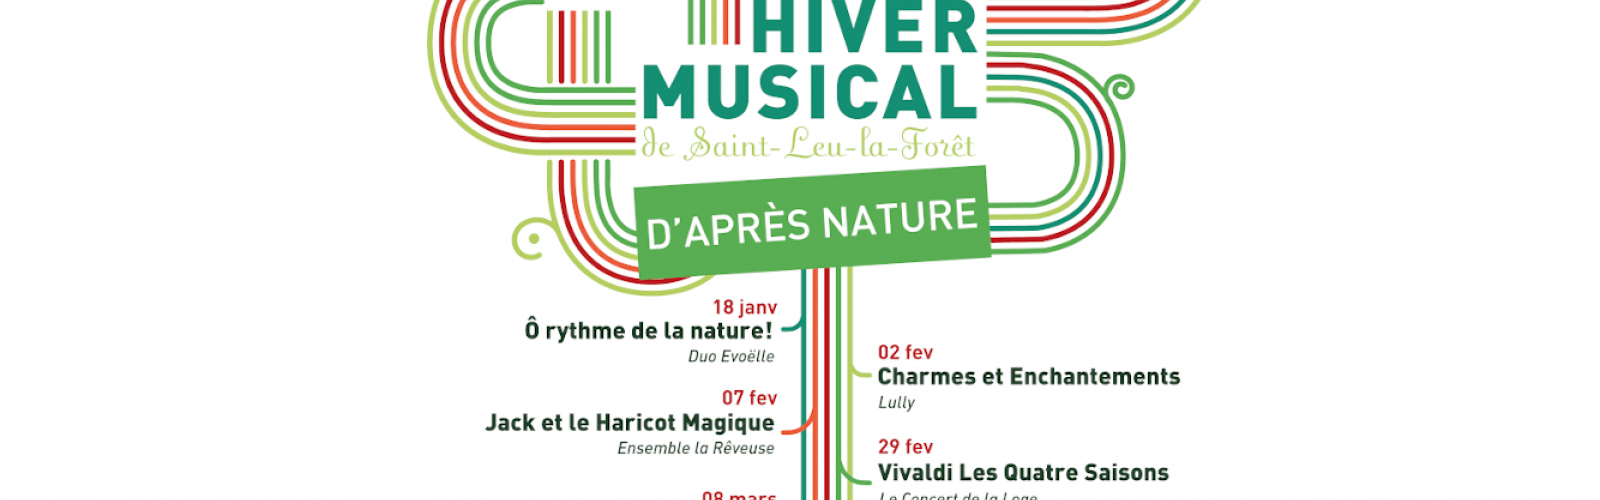 Hiver Musical